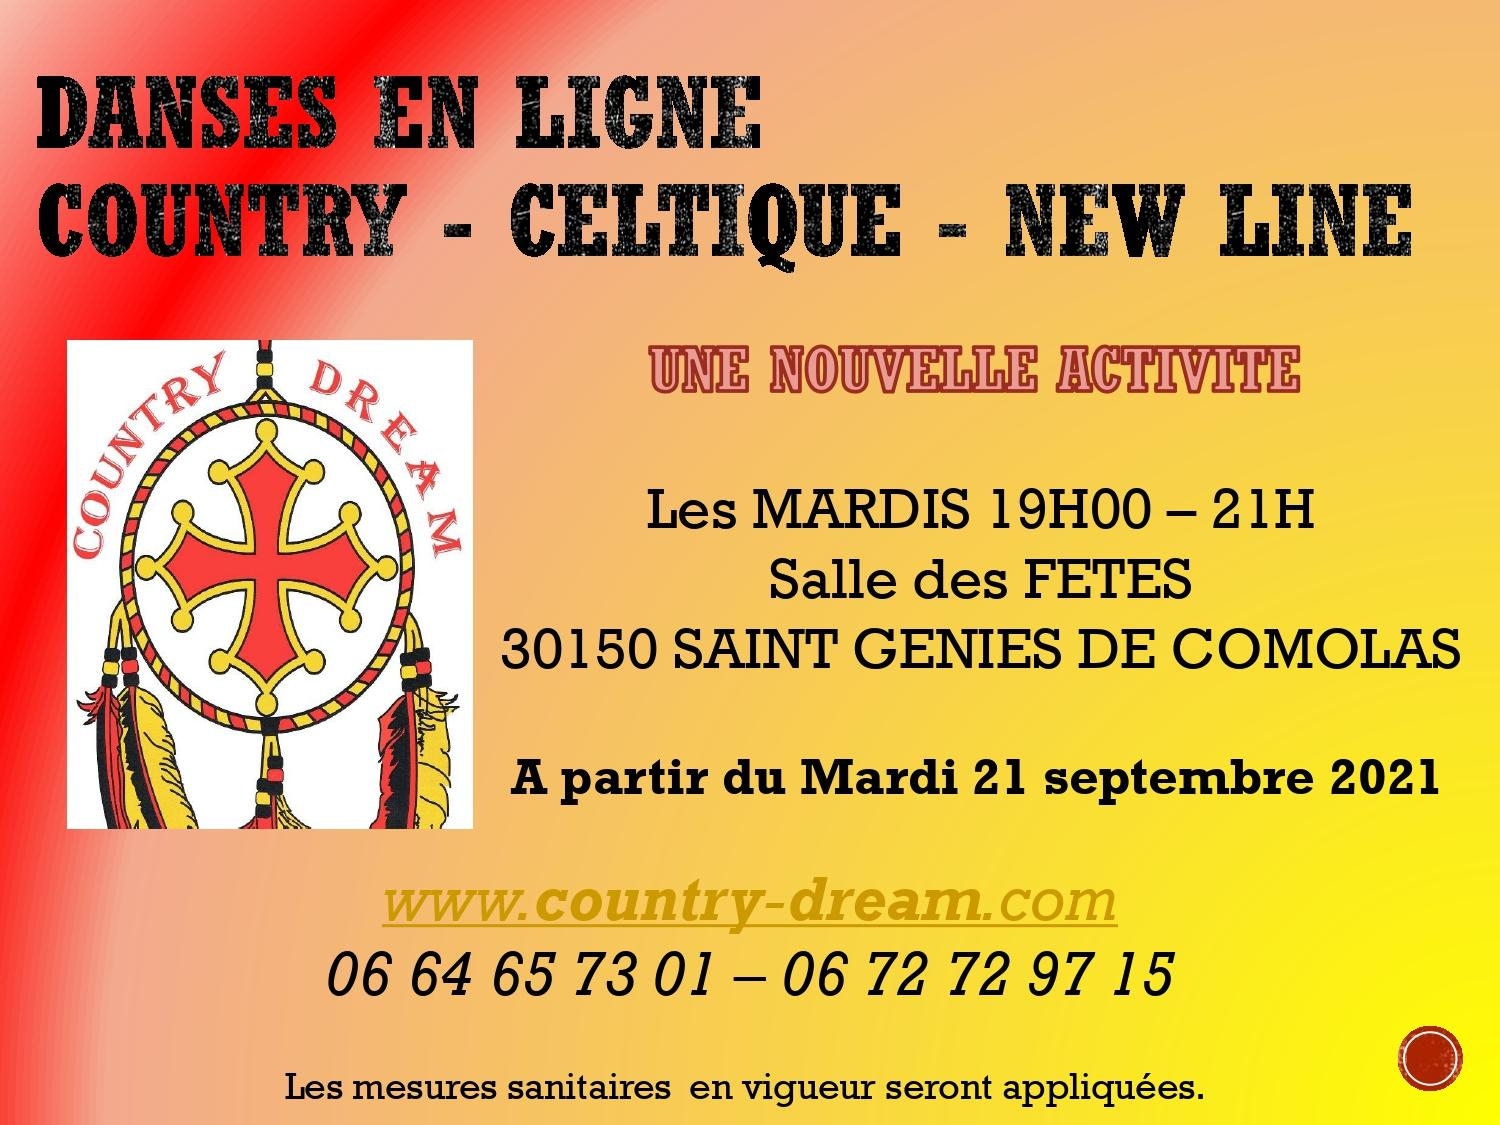 Cours country page 2021 22